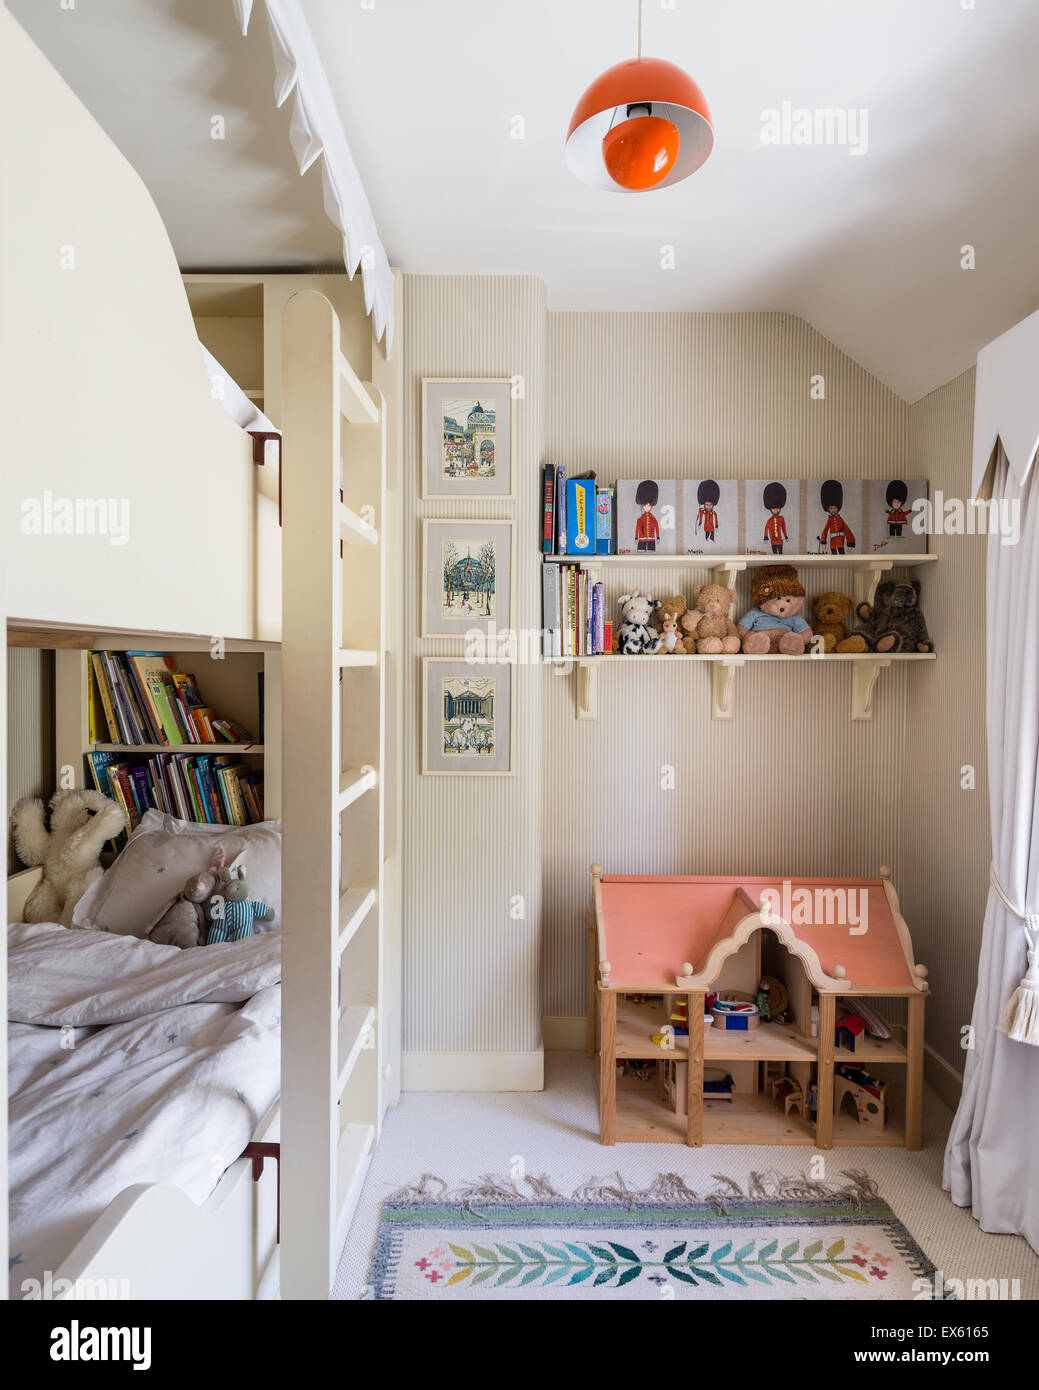 Osborn and Little striped wallpaper in kids bedroom with bunk beds and  Polish folk rug. Osborn and Little striped wallpaper in kids bedroom with bunk beds